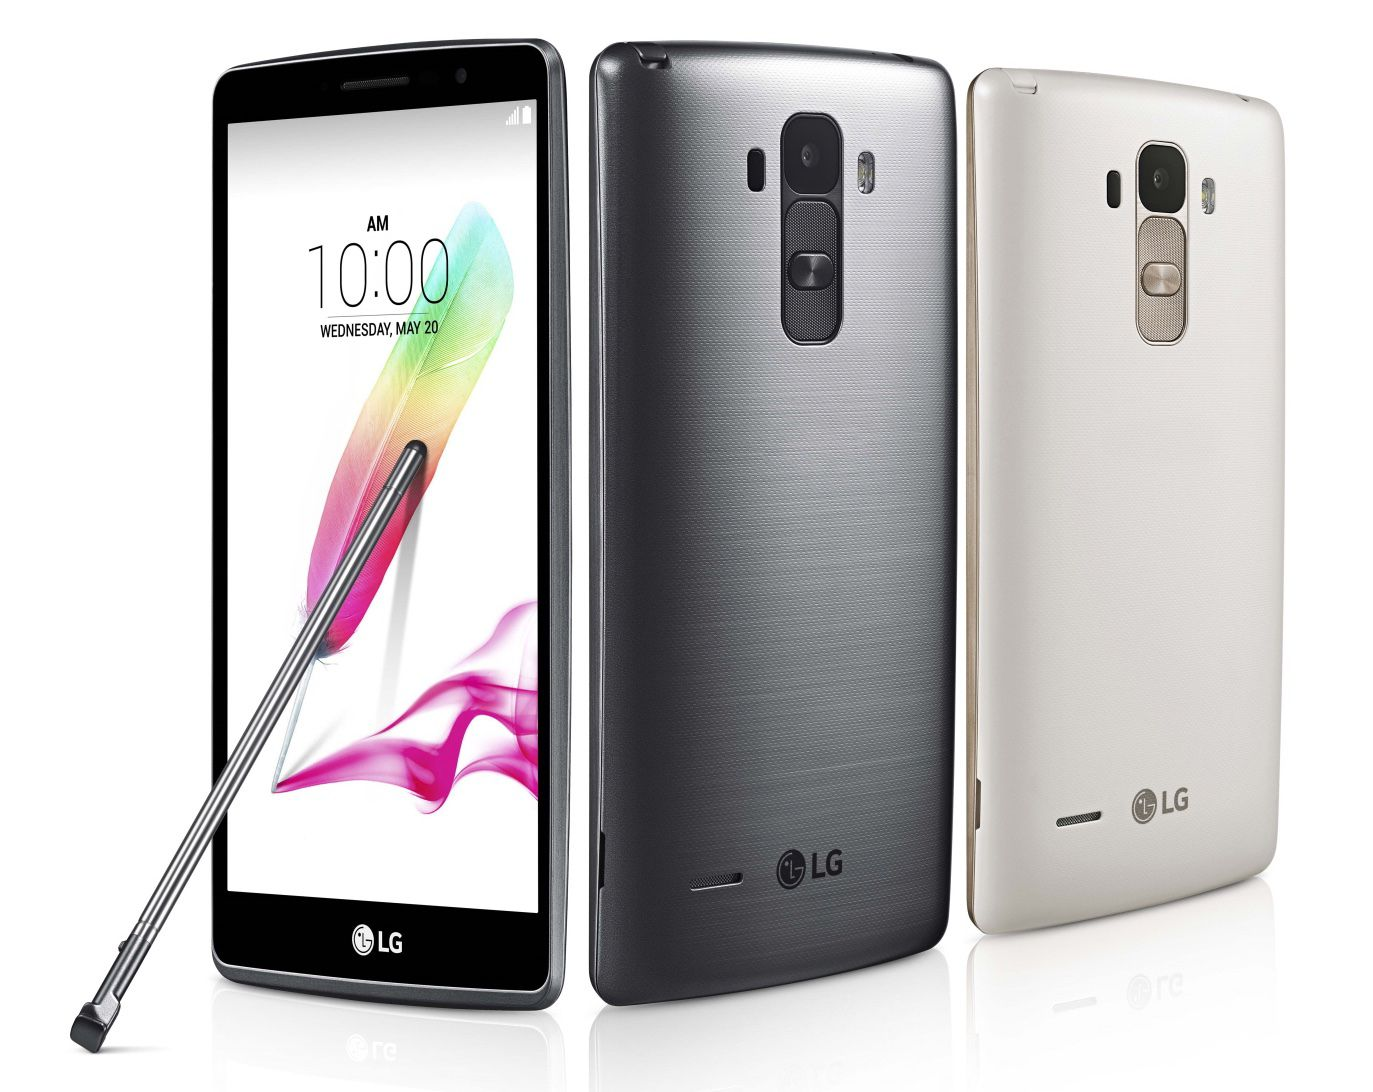 LG adds to the G4 family with two new mid-range devices ...